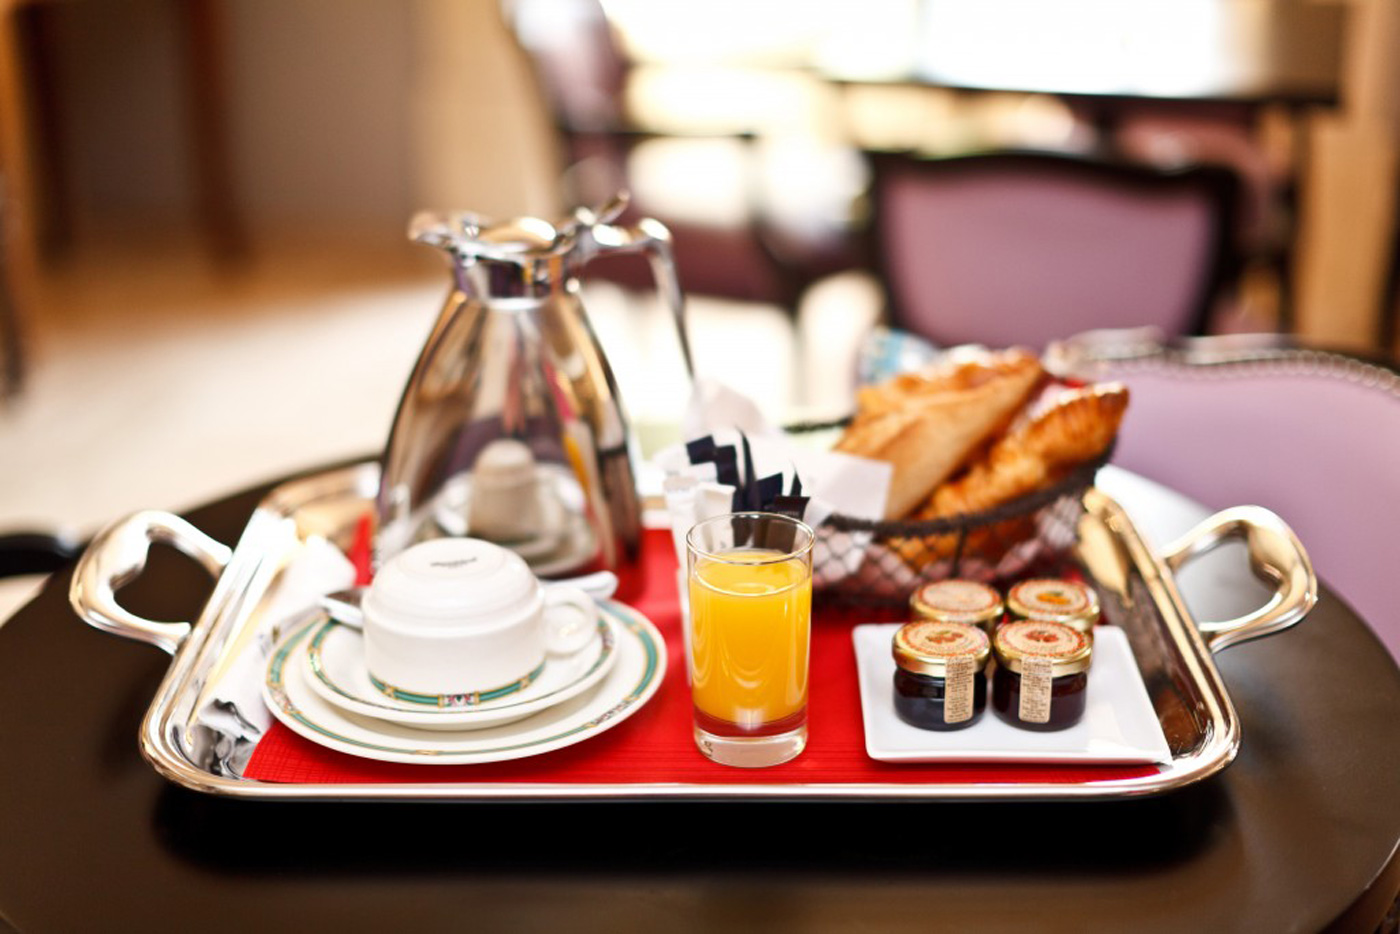 Petit Dejeuner Sur Paris Special Bed And Breakfast Offer Hotel Cannes Hôtel De